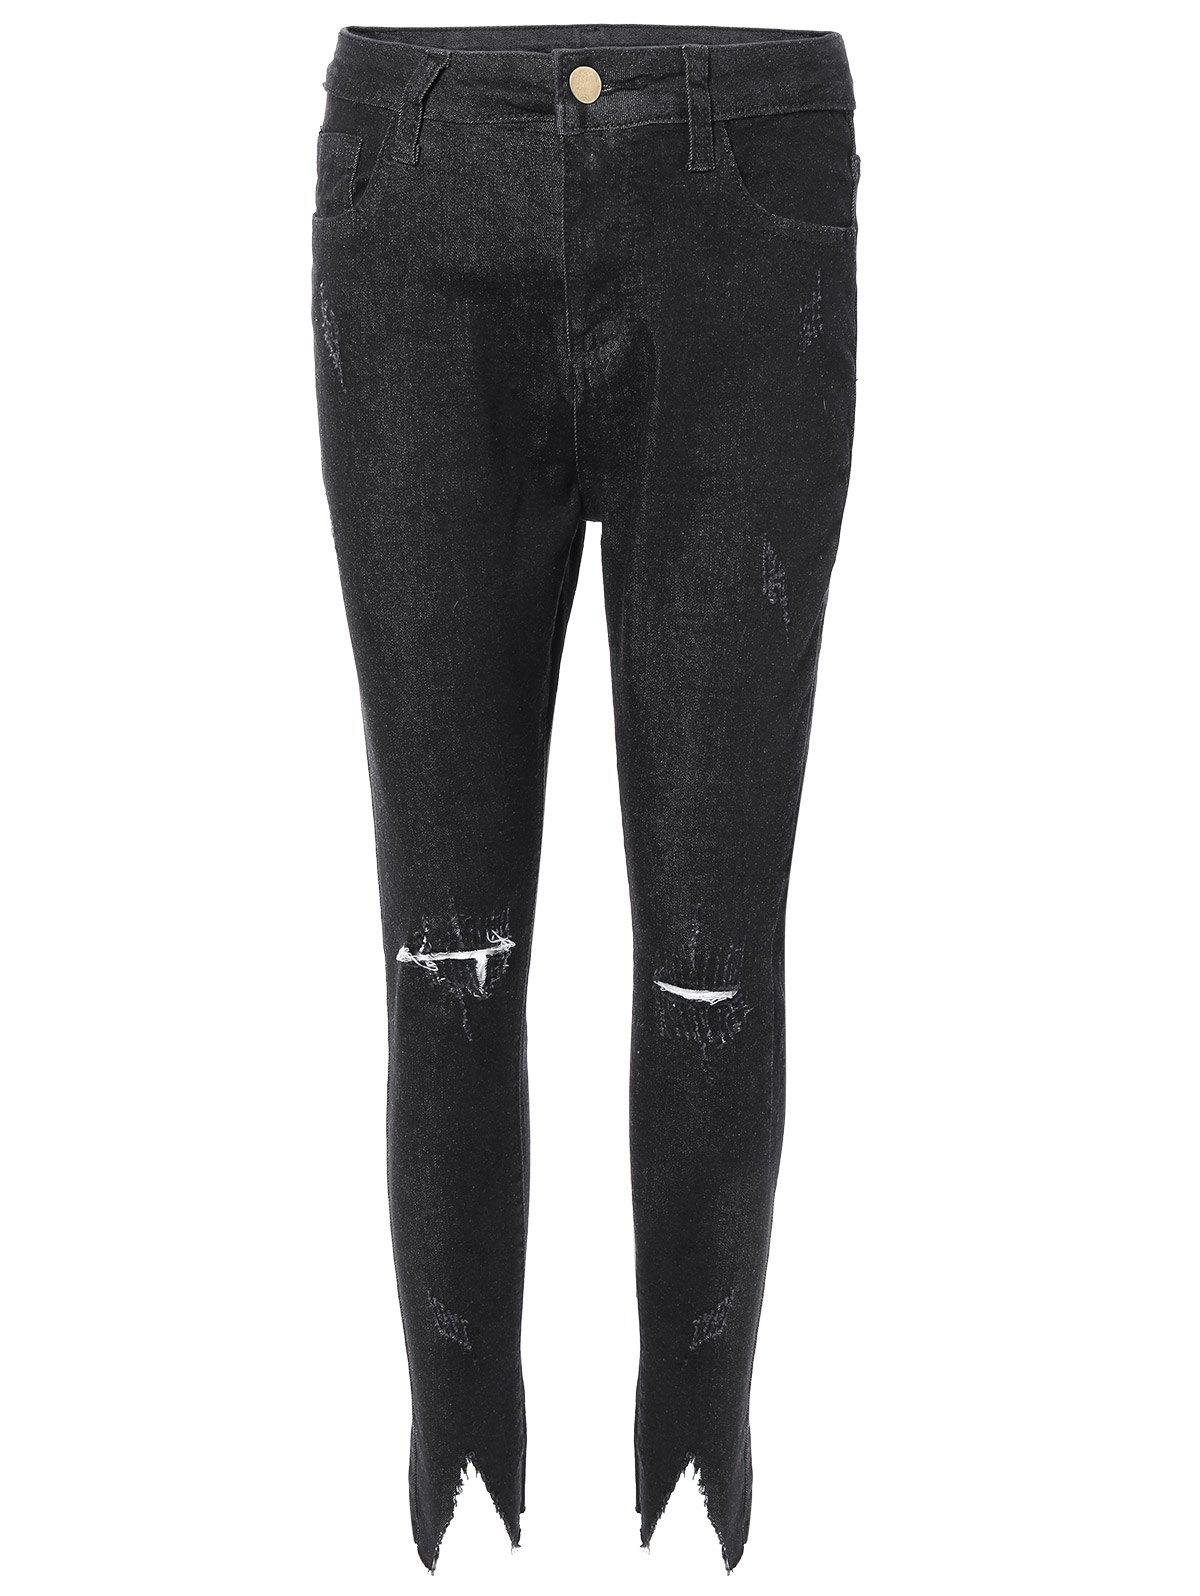 Distressed effilochés Garniture Jeans - Noir M